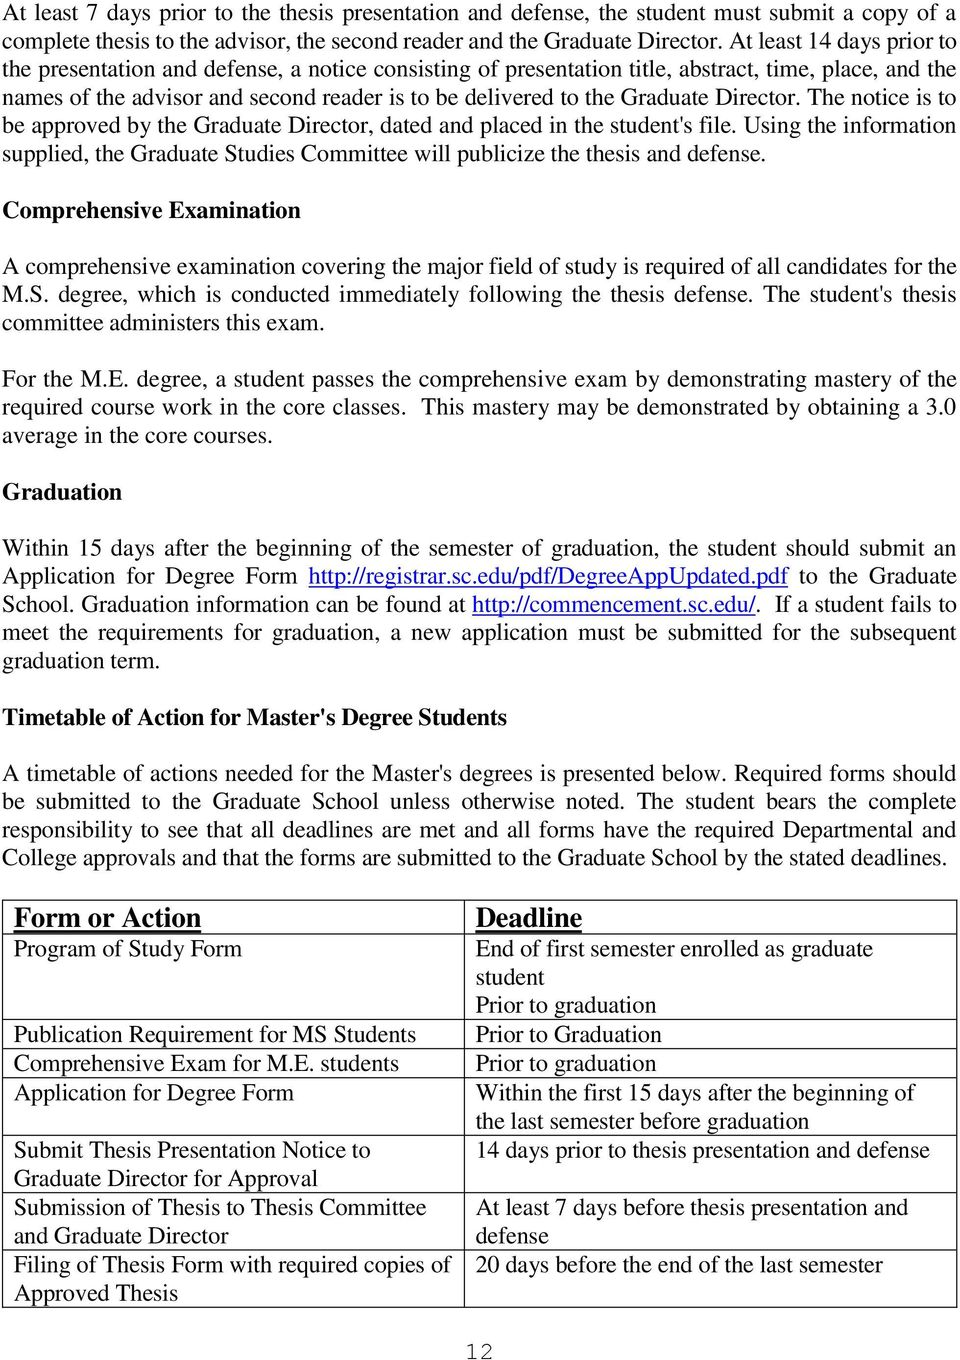 Graduate Director. The notice is to be approved by the Graduate Director, dated and placed in the student's file.